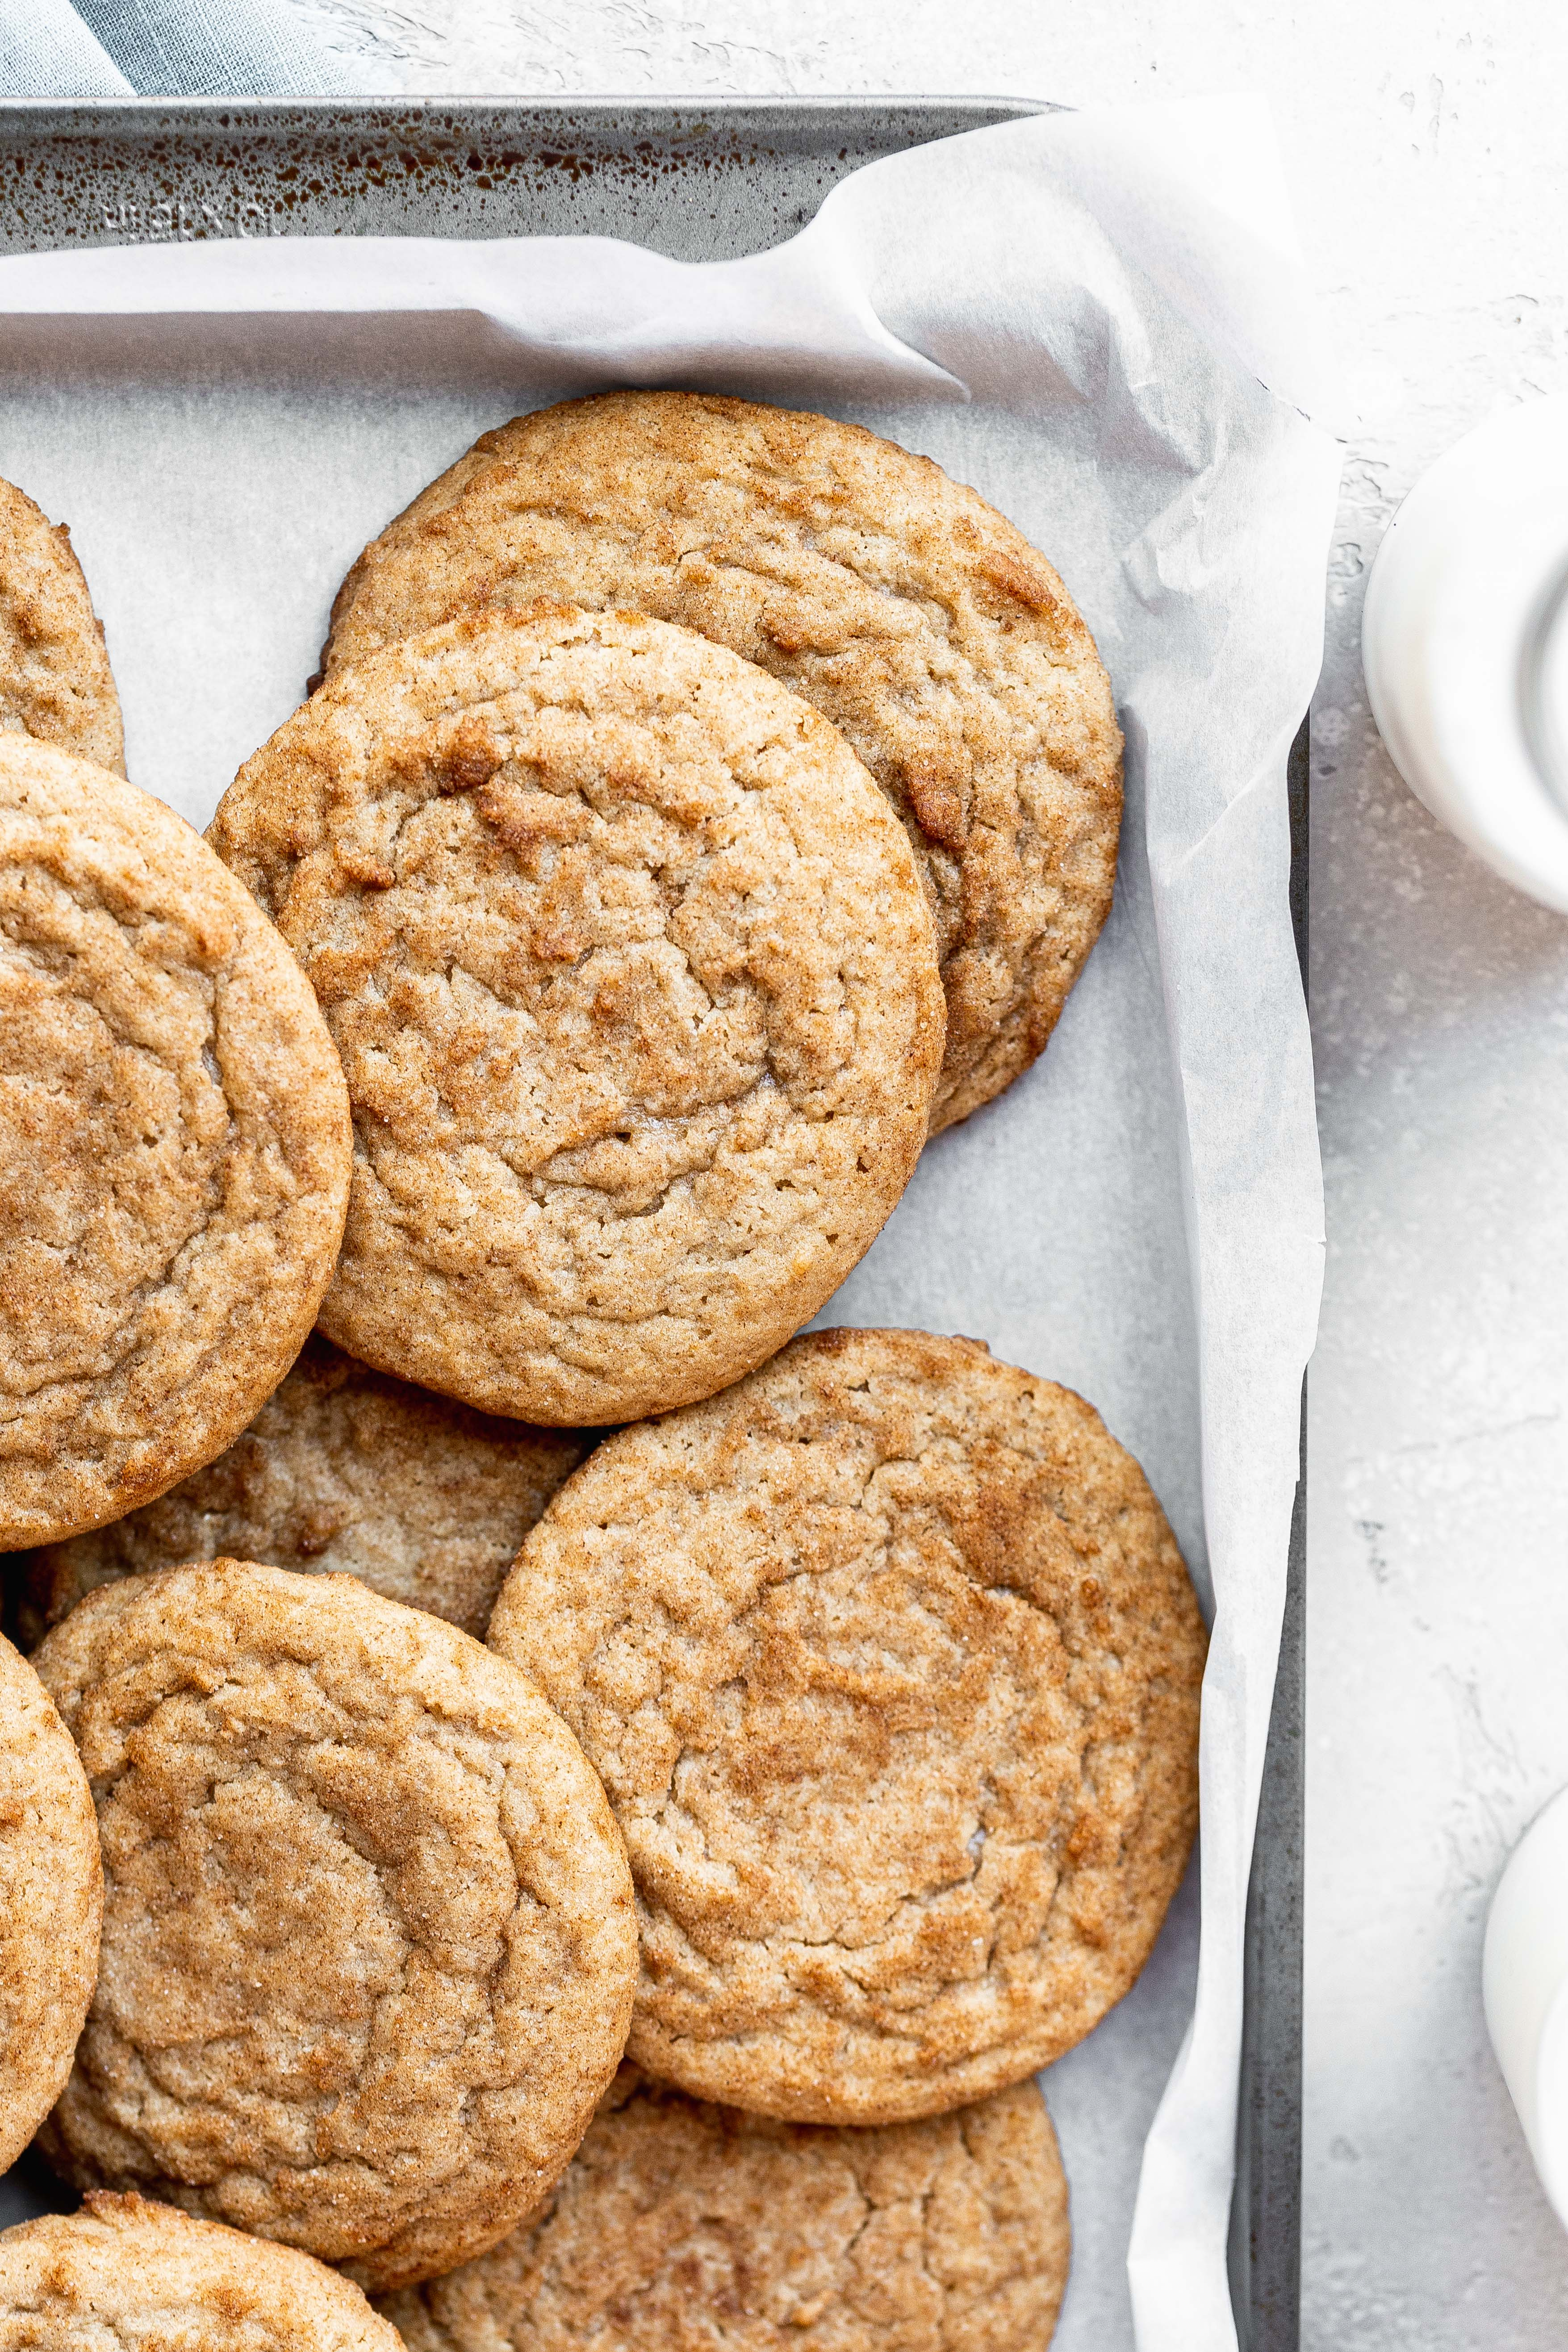 snickerdoodle cookies in a baking tray